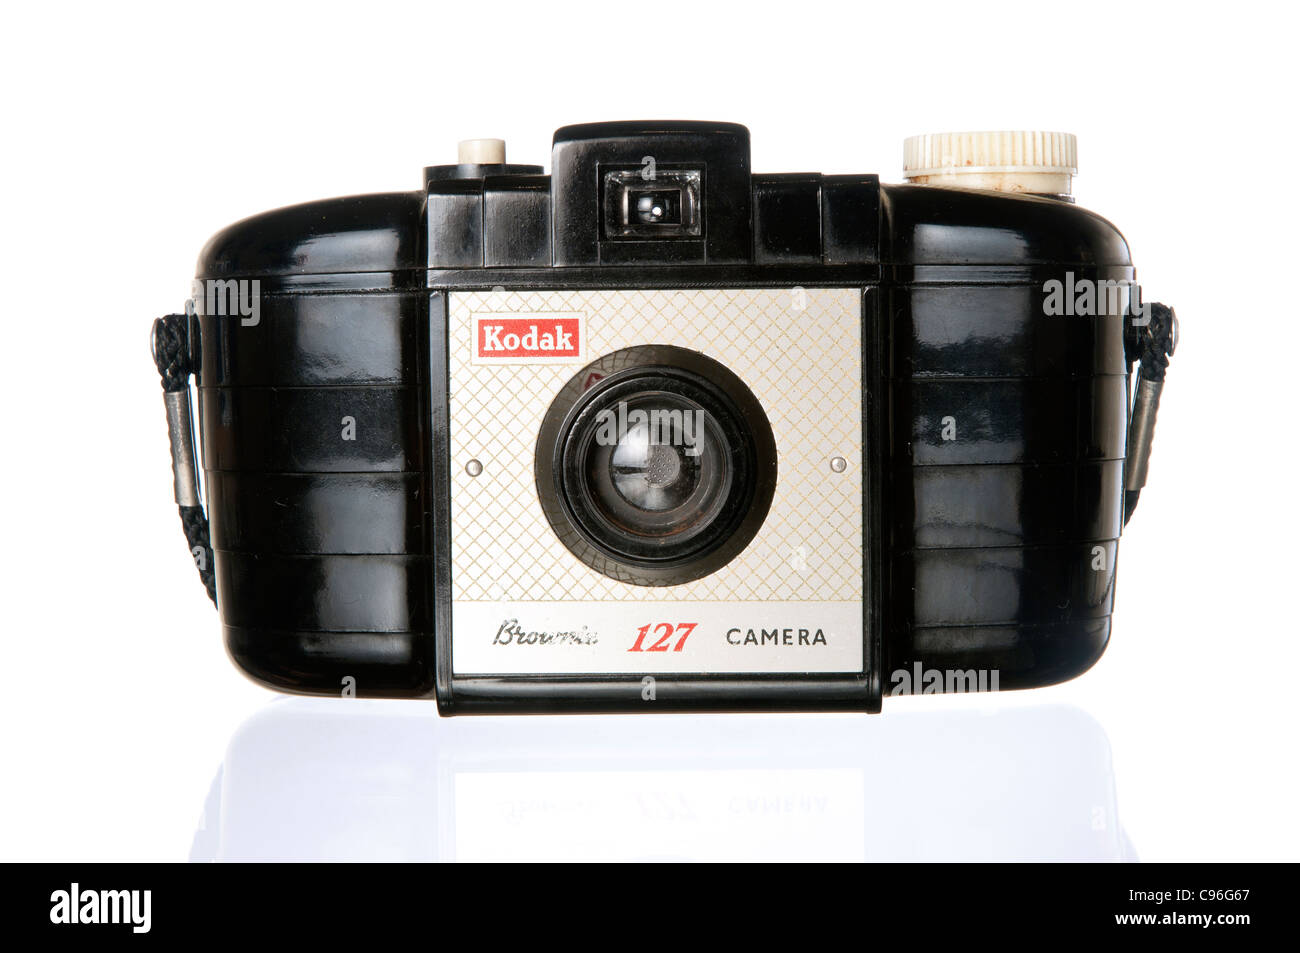 A 1960's kodak 127 brownie camera photographed against a white background - Stock Image